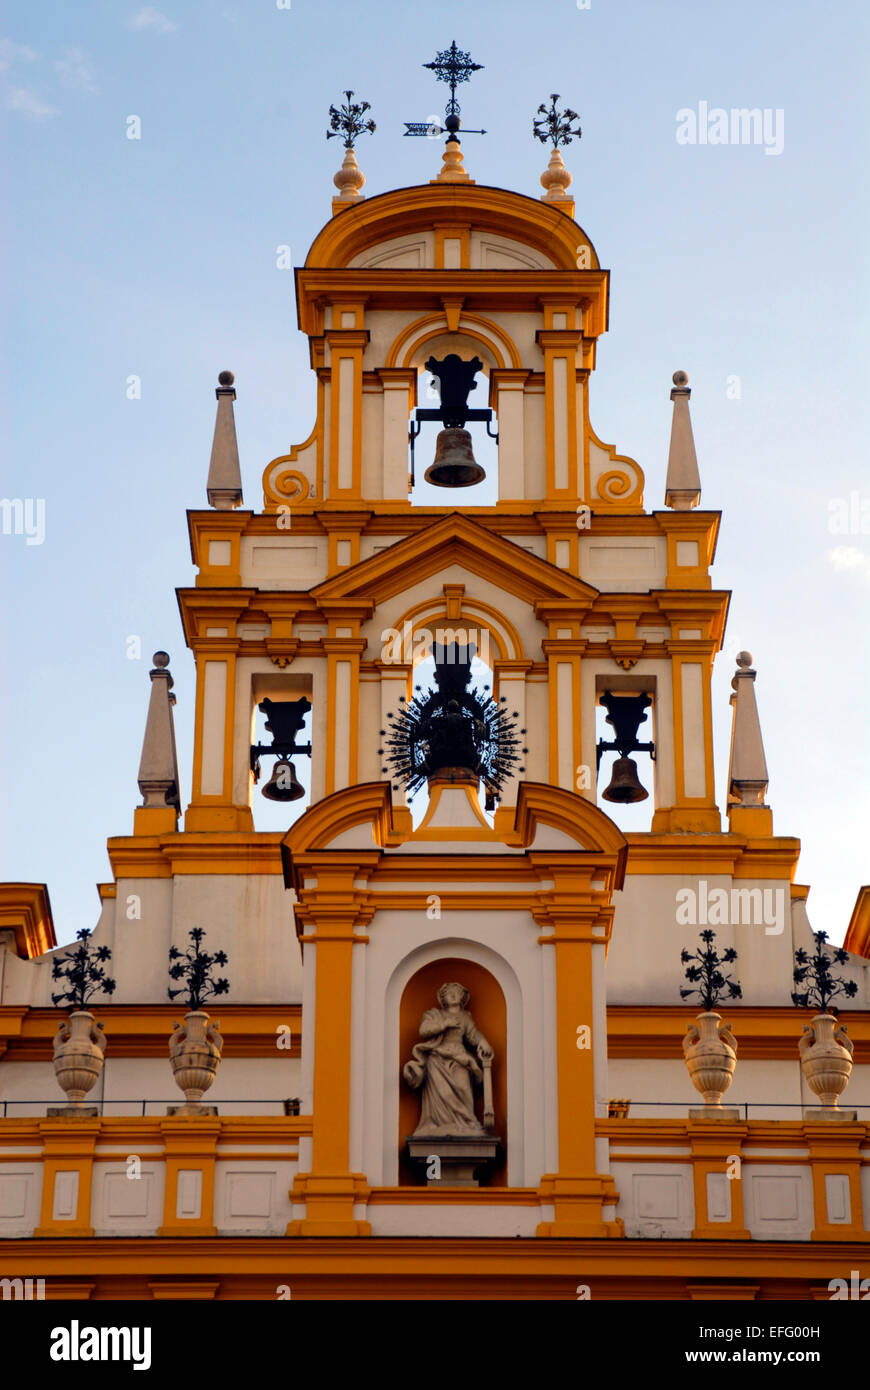 Basilica Macarena, Church, Seville, Spain - Stock Image